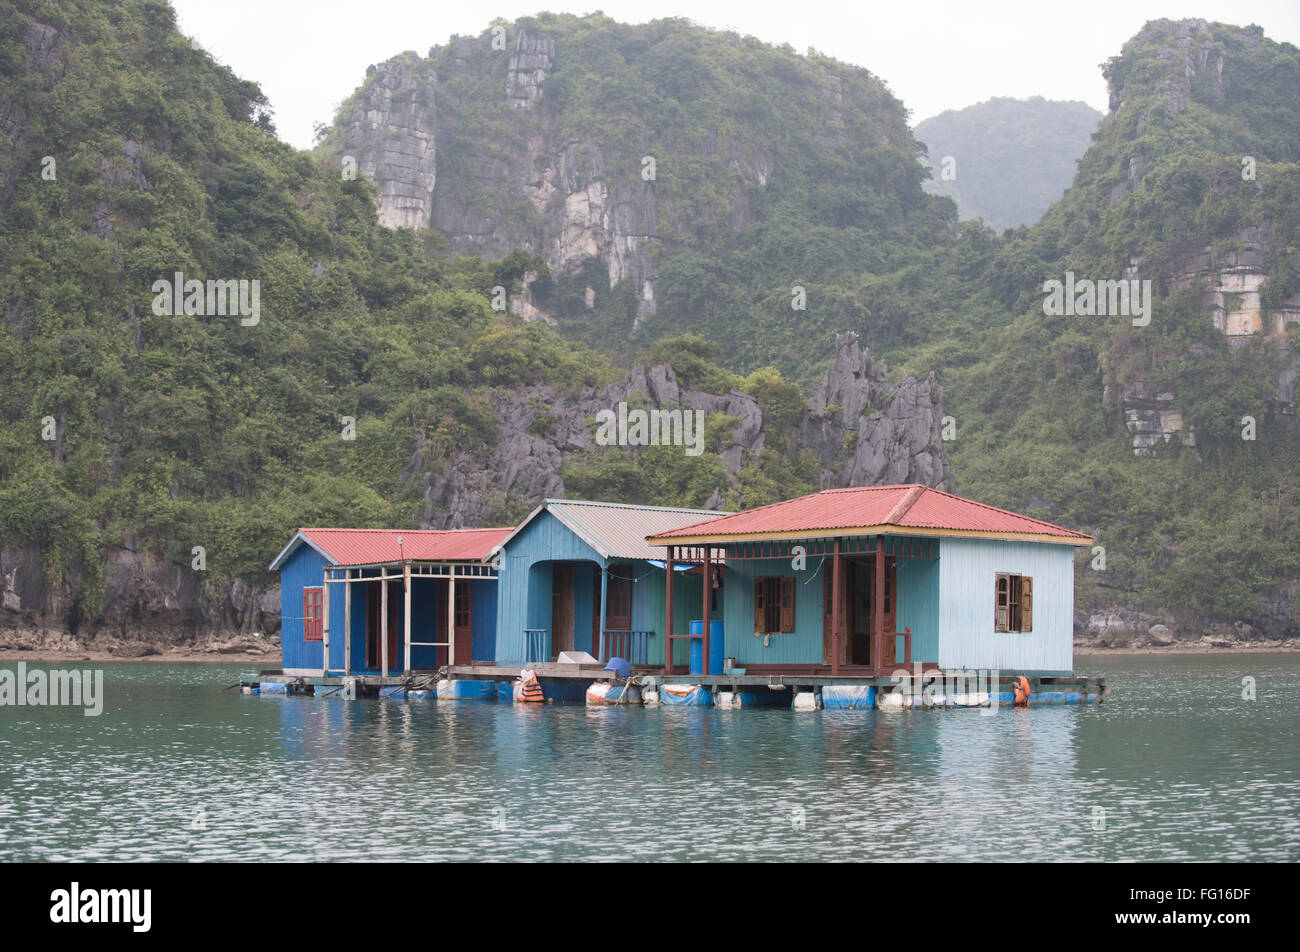 Floating houses in a fishing and pearl village in Halong Bay in North Vietnam - Stock Image